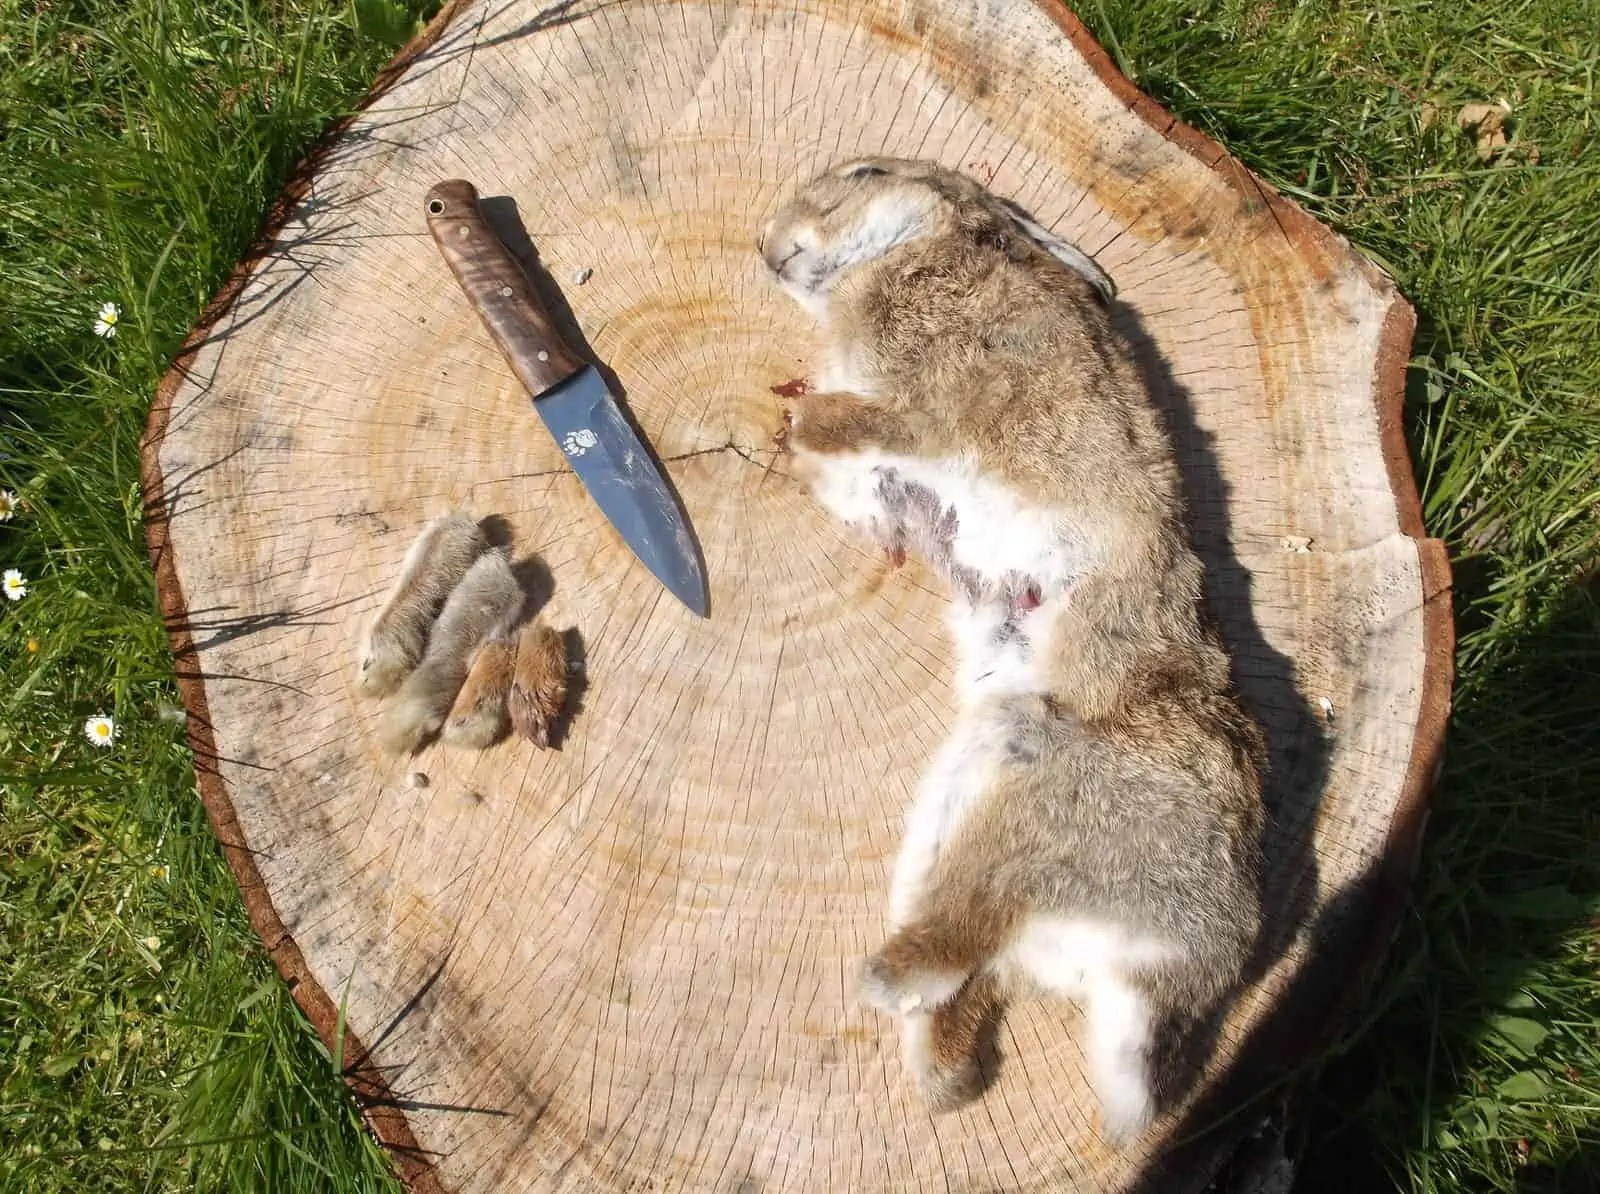 Examplary Rabbit Skinning How To Skin Butcher A Rabbit Dorset Bushcraft Courses How To Butcher A Wild Rabbit How To Butcher A Rabbit Meat houzz-03 How To Butcher A Rabbit